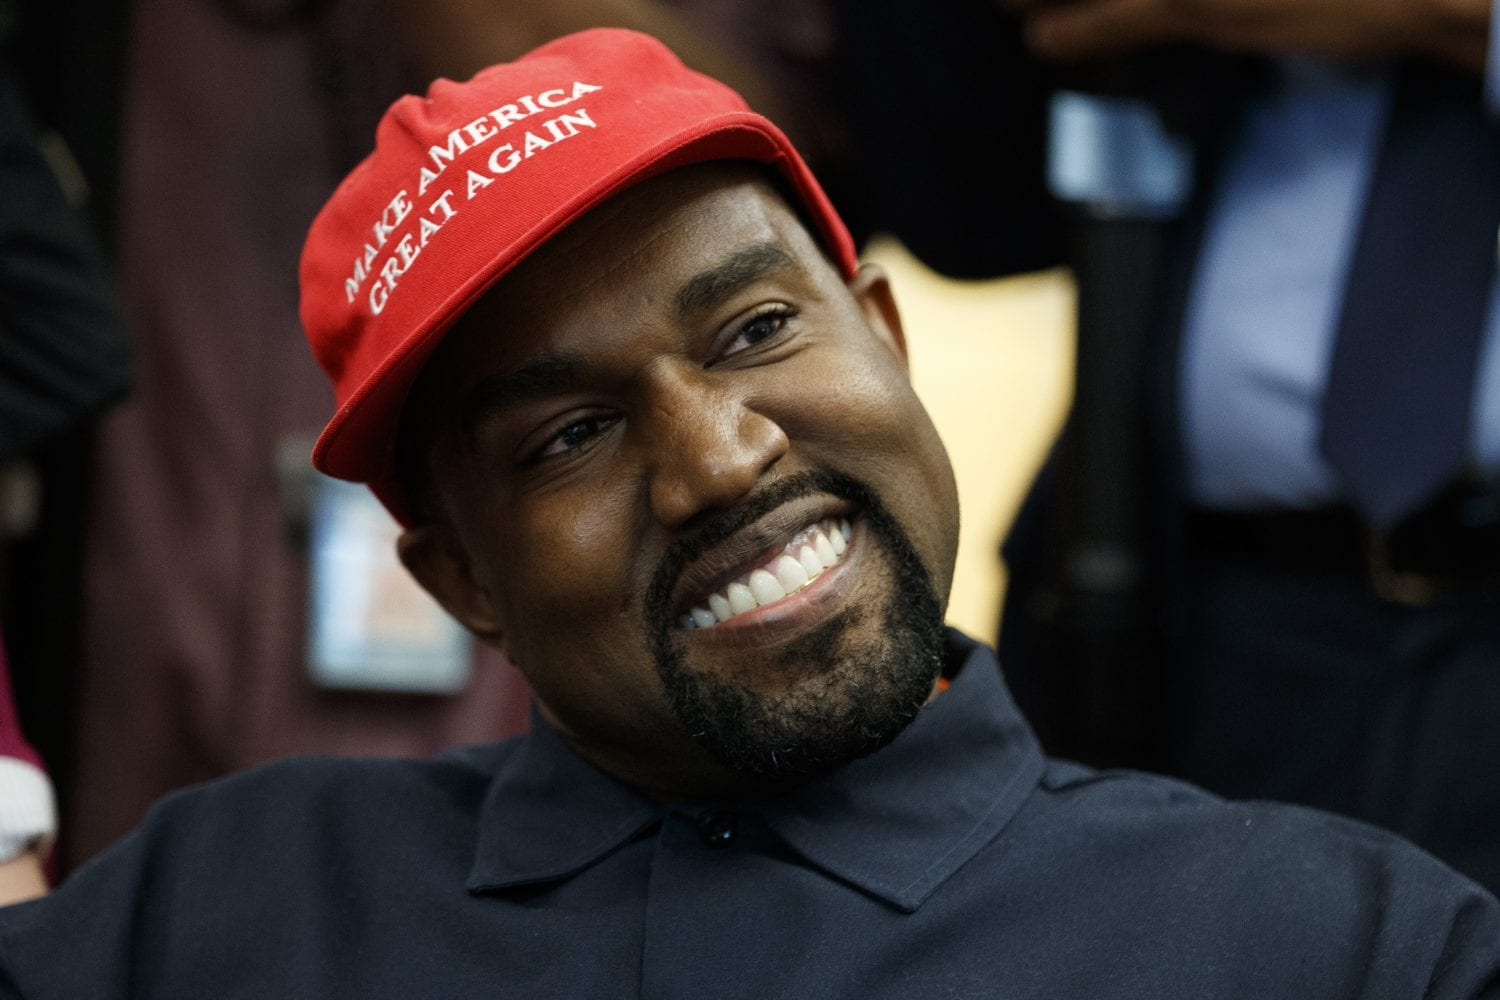 Kanye West's public support of the President has caused America to ask some serious questions about where their loyalties really lie.